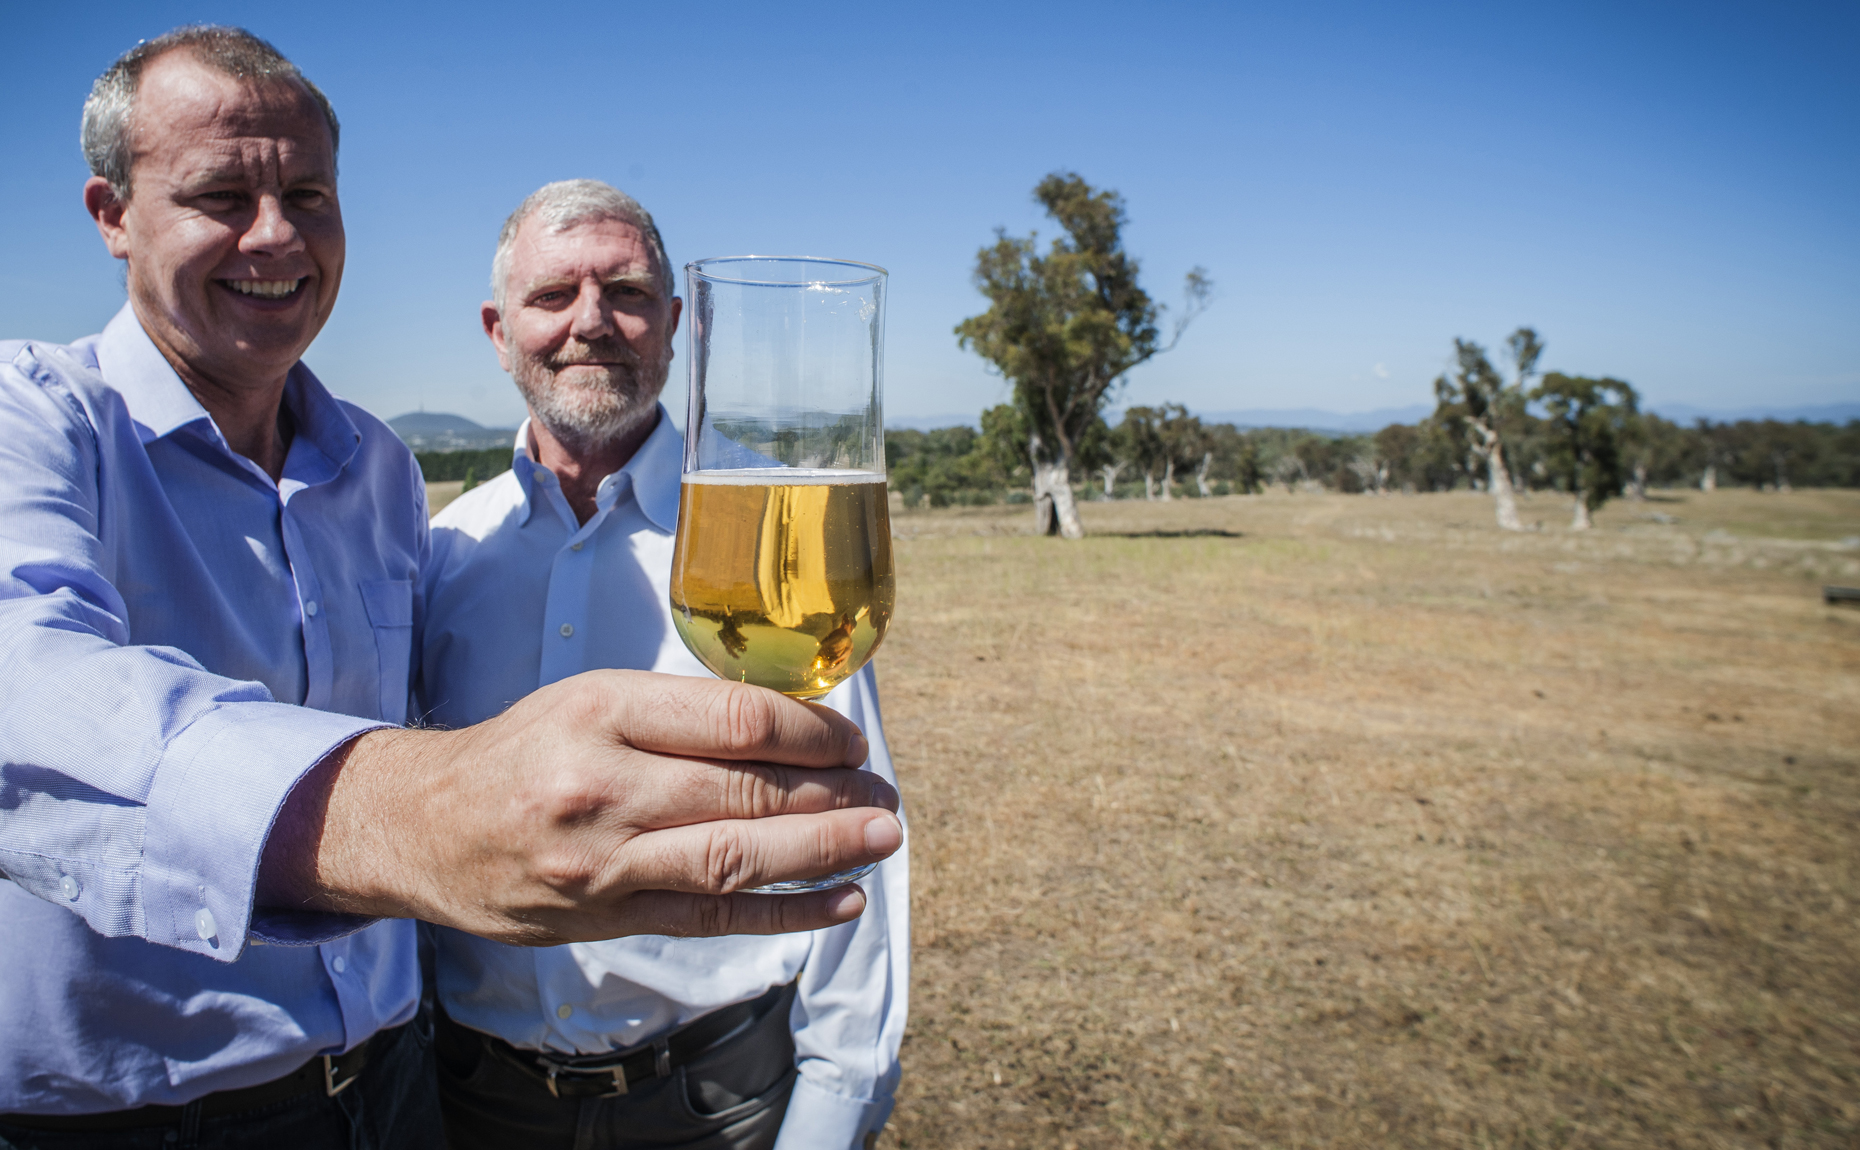 Dr Crispin Howitt and Dr Phil Larkin from the Kebari barley team stand holding a glass of beer, an example of a product made with Kebari barley, in a field.